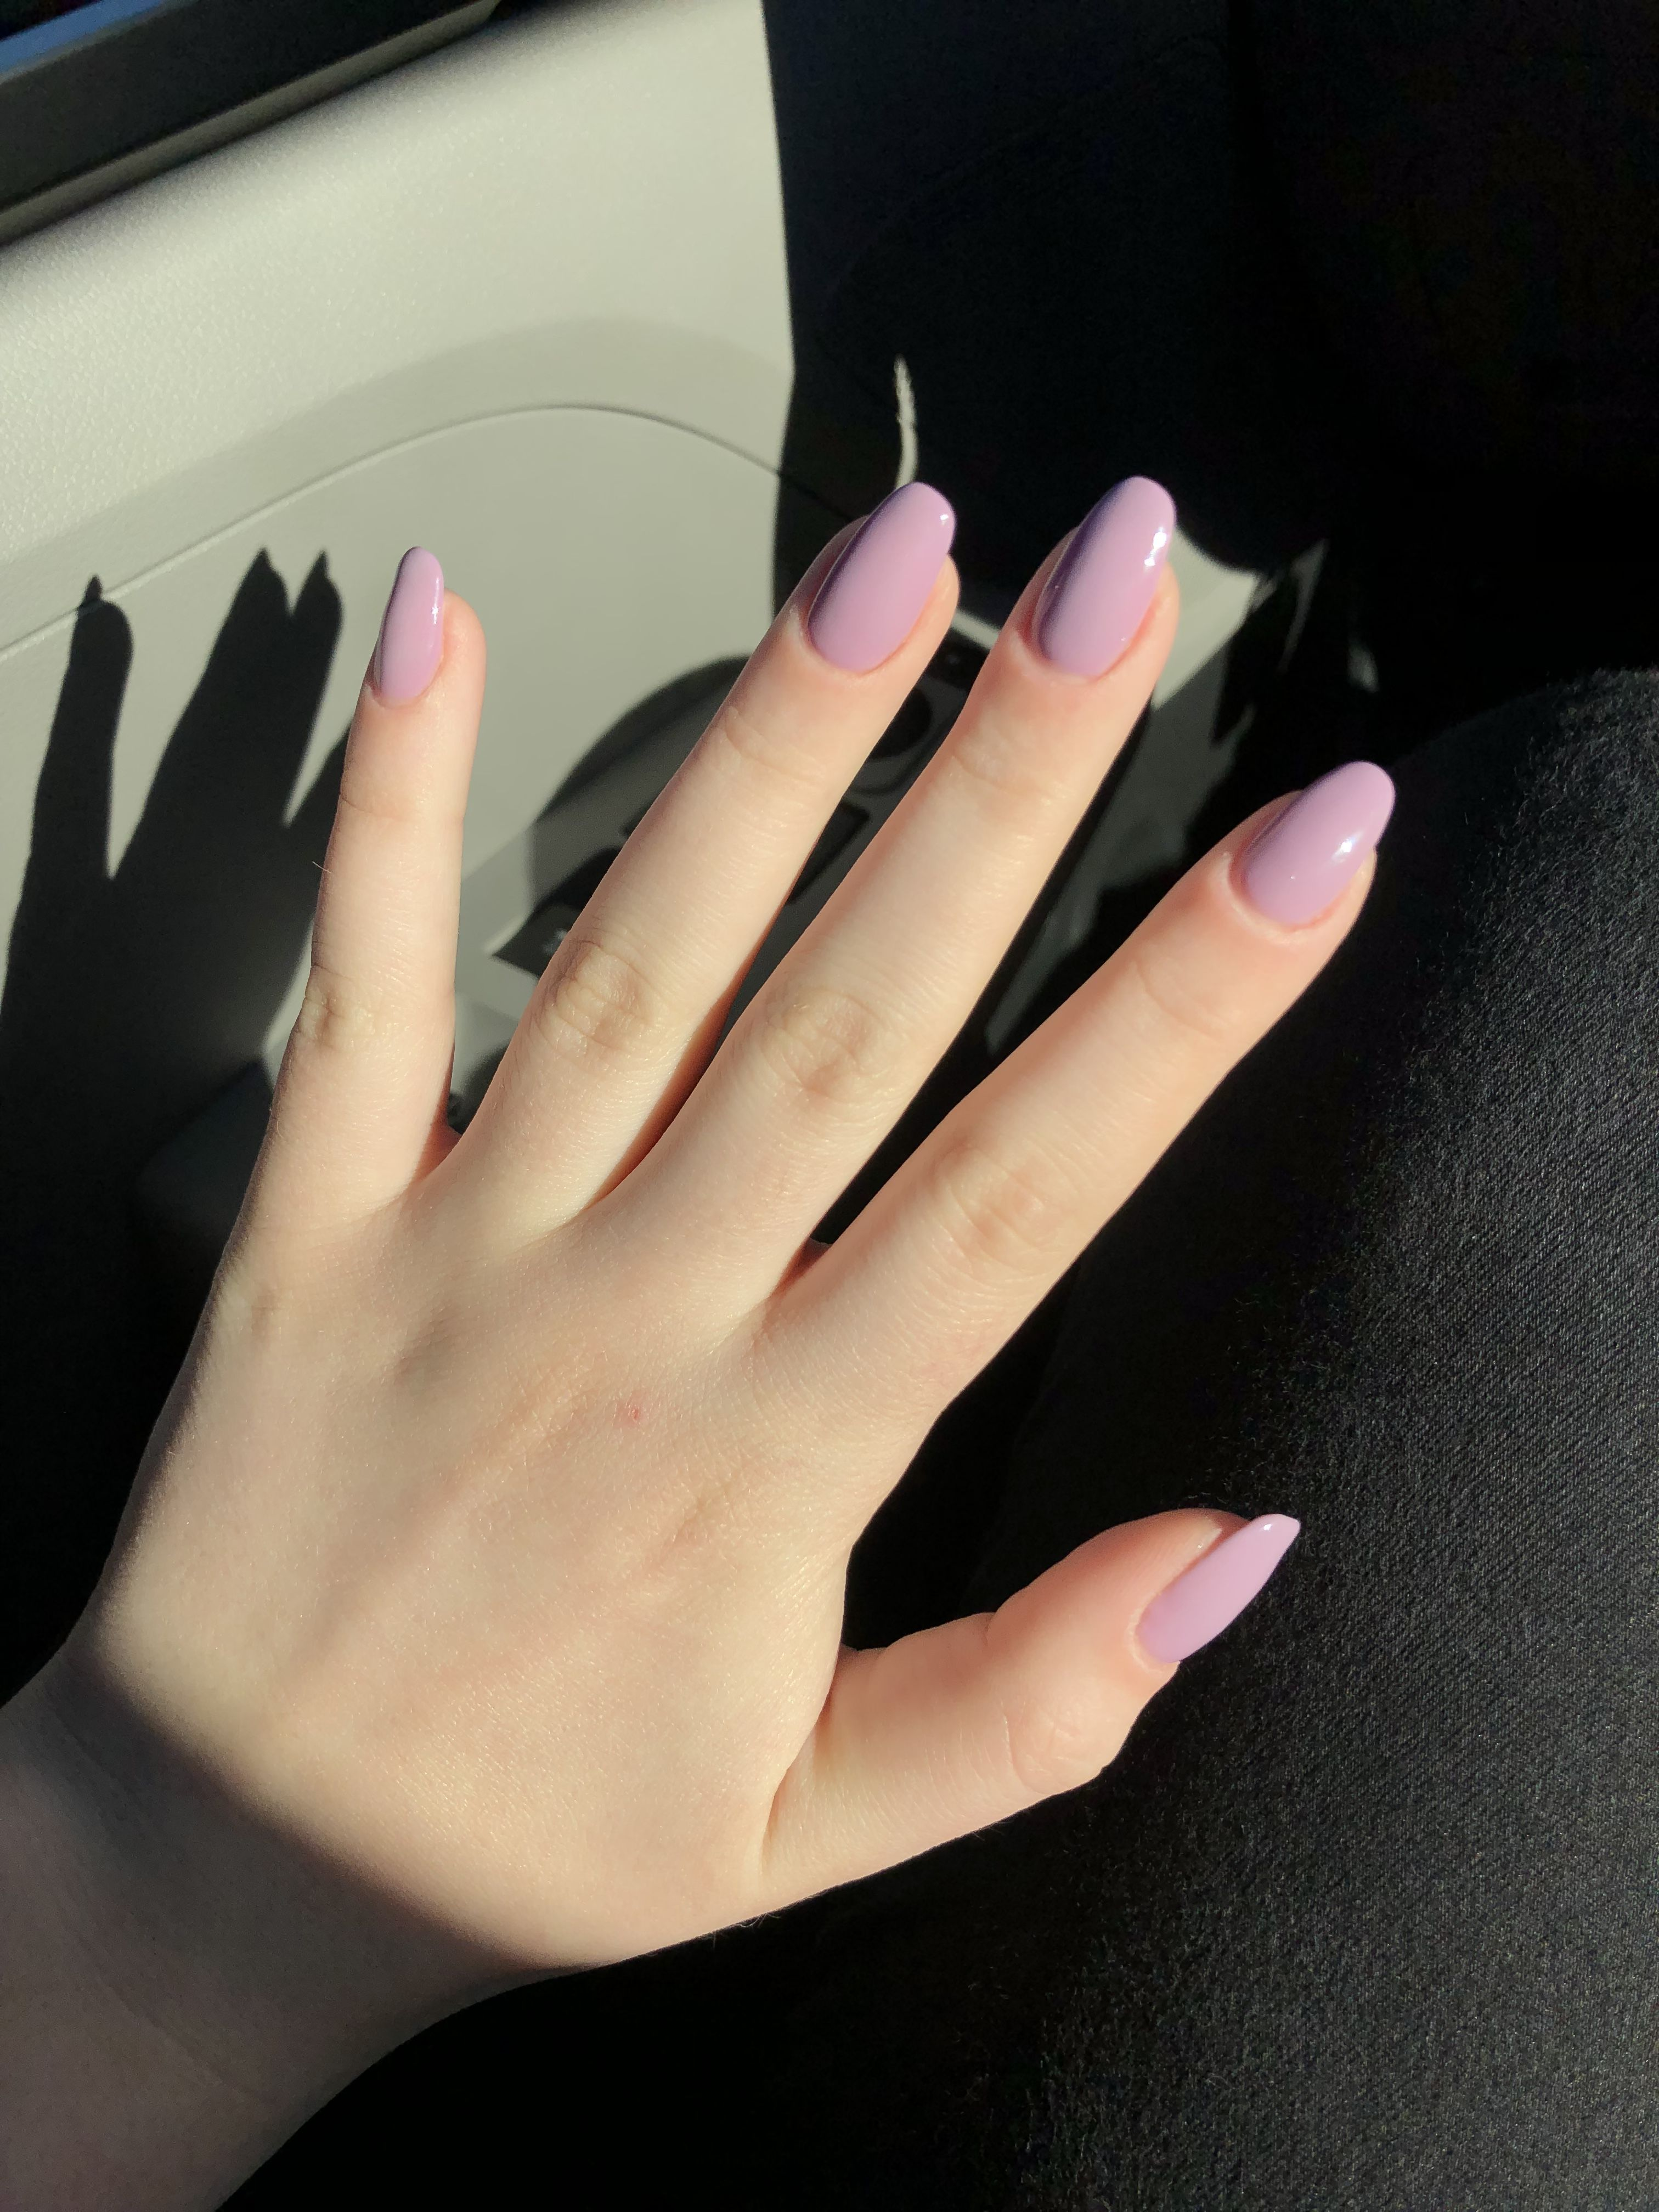 13 Acrylic Nails Pastel Tumblr A Self Made Brand Built On Bringing Our First Clothing Loves To Everyone Acrylic Nails Pastel Simple Nails Acrylic Nail Designs